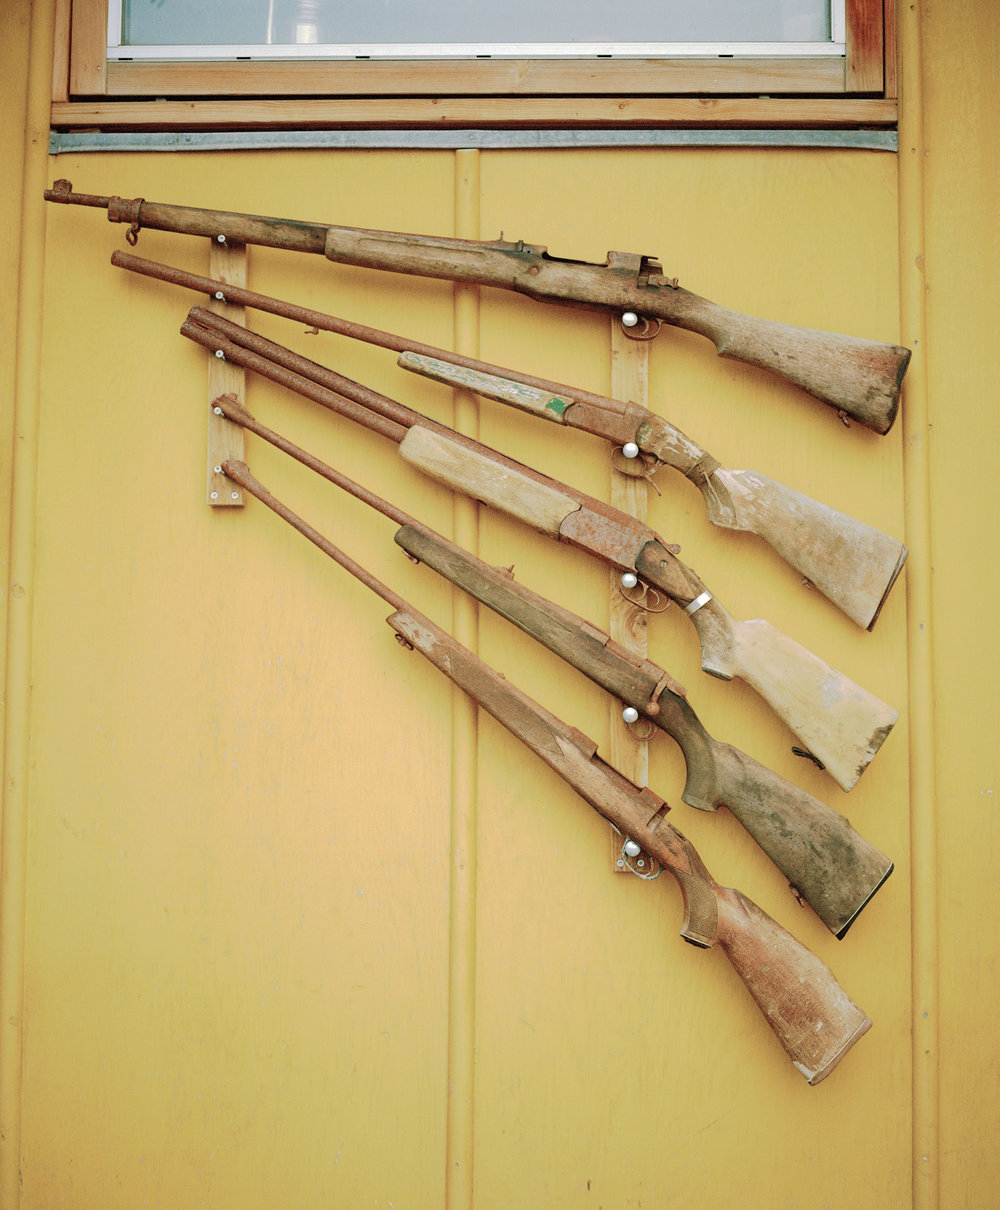 Old guns hang on the outside of a house in Uummannaq. Hunting is an old tradition, but the modern way of fishing provides more income because seal fur is no longer popular within the country or for exportation.